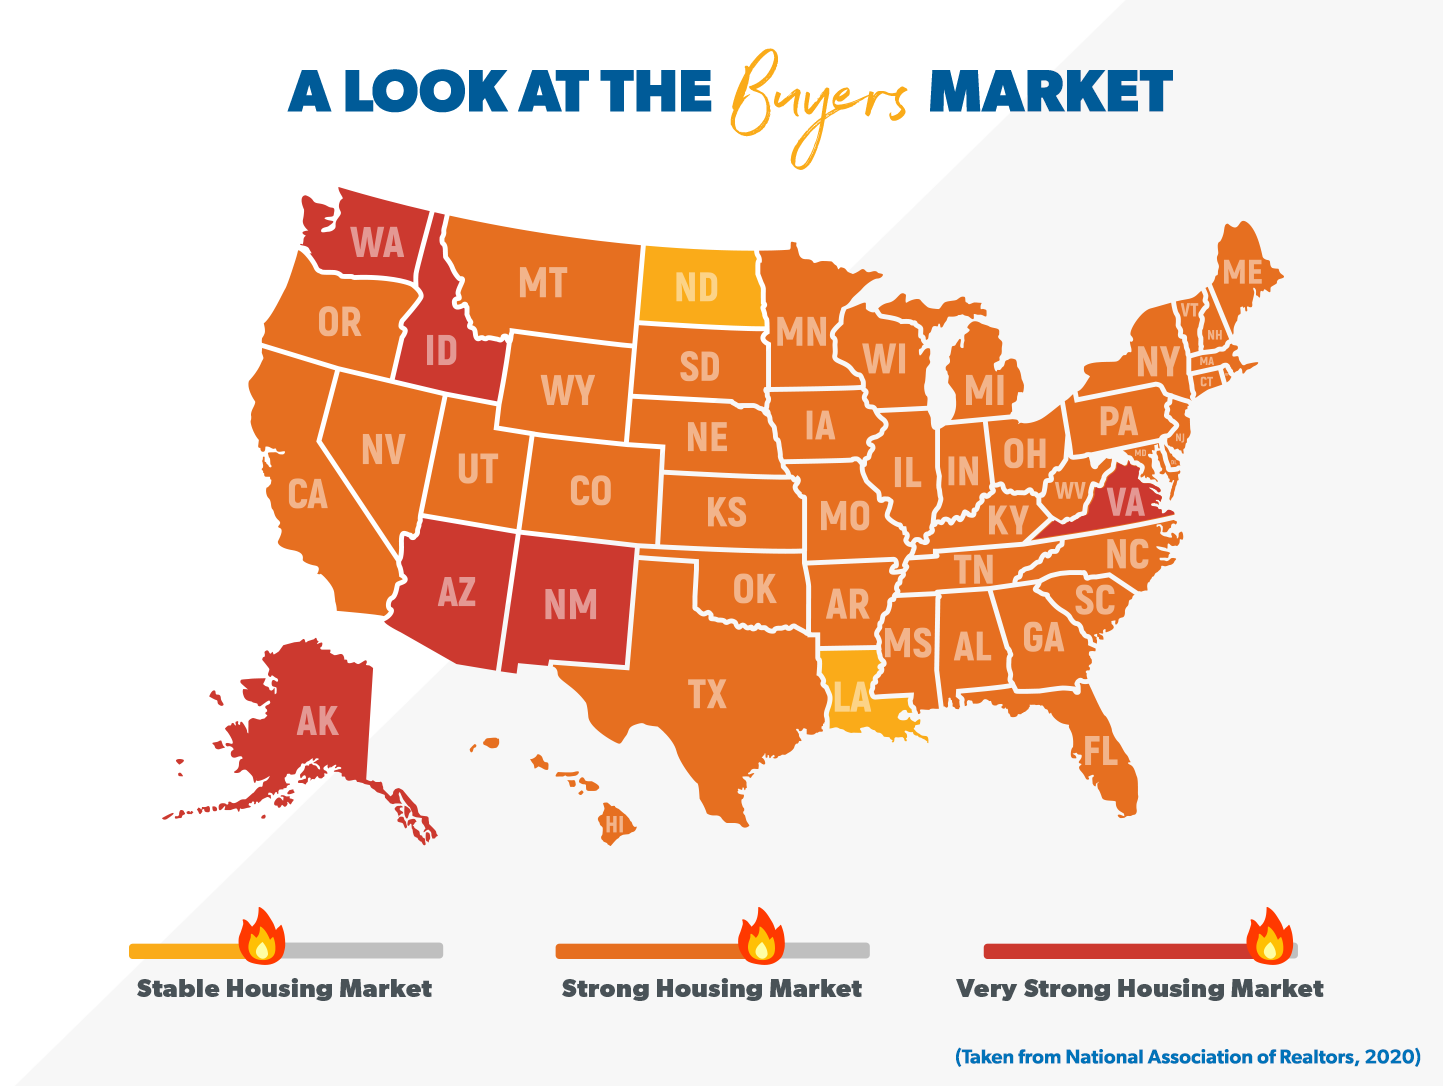 Housing Market Forecast 2021 How Hot Will It Be Housing Market Marketing Forecast